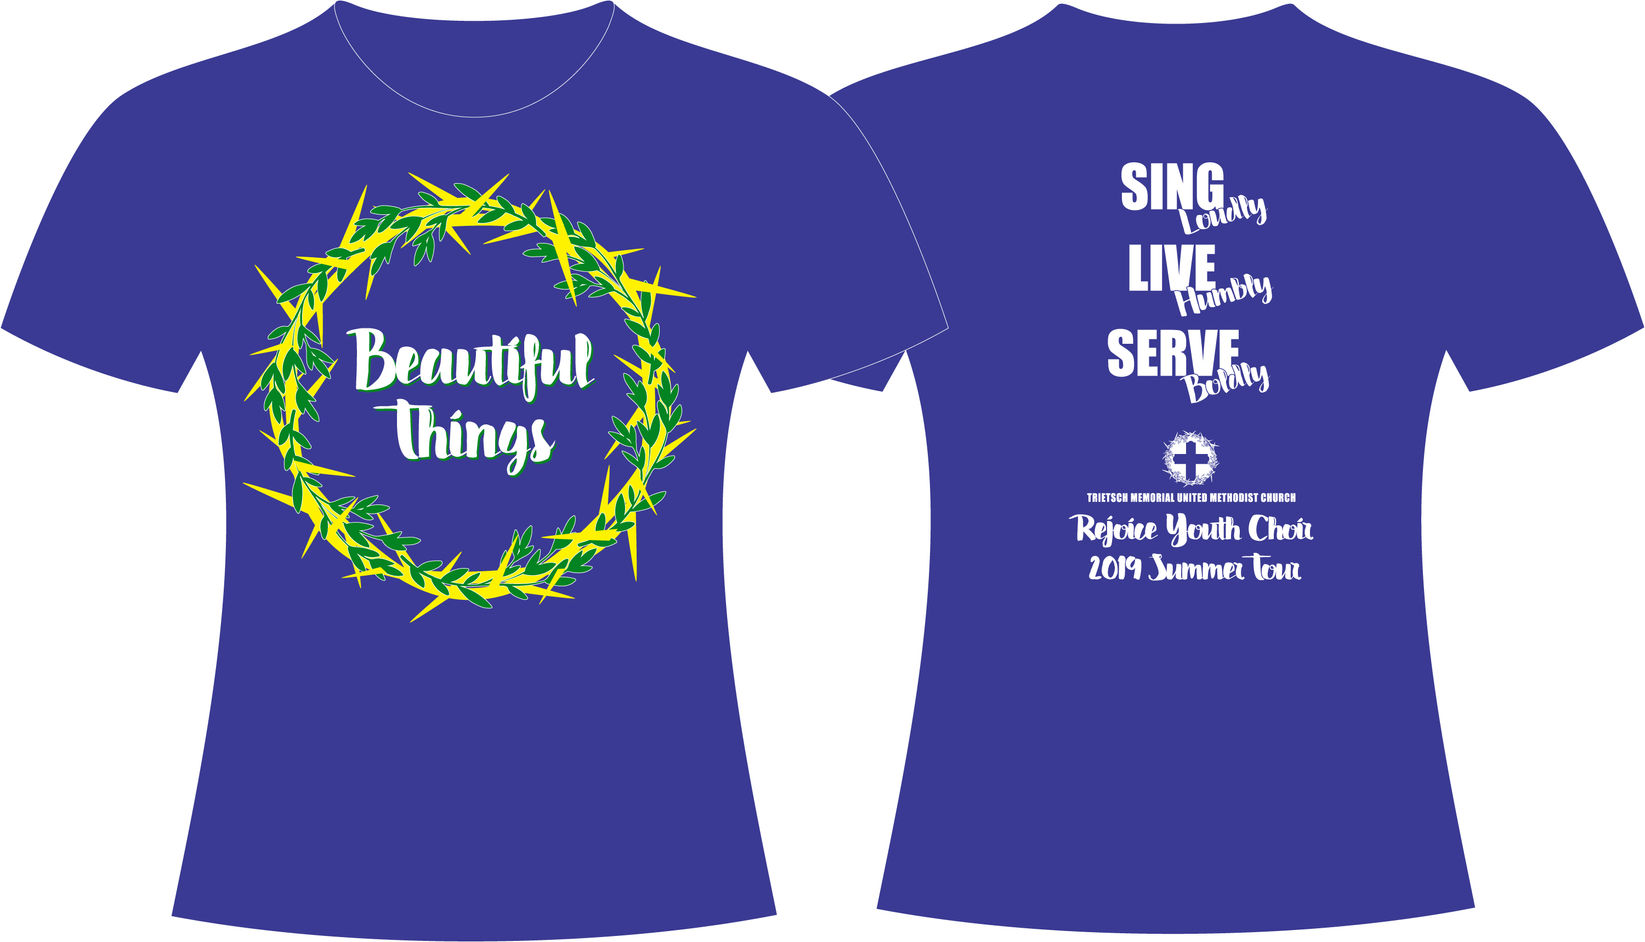 Beautiful Things T-Shirt Design